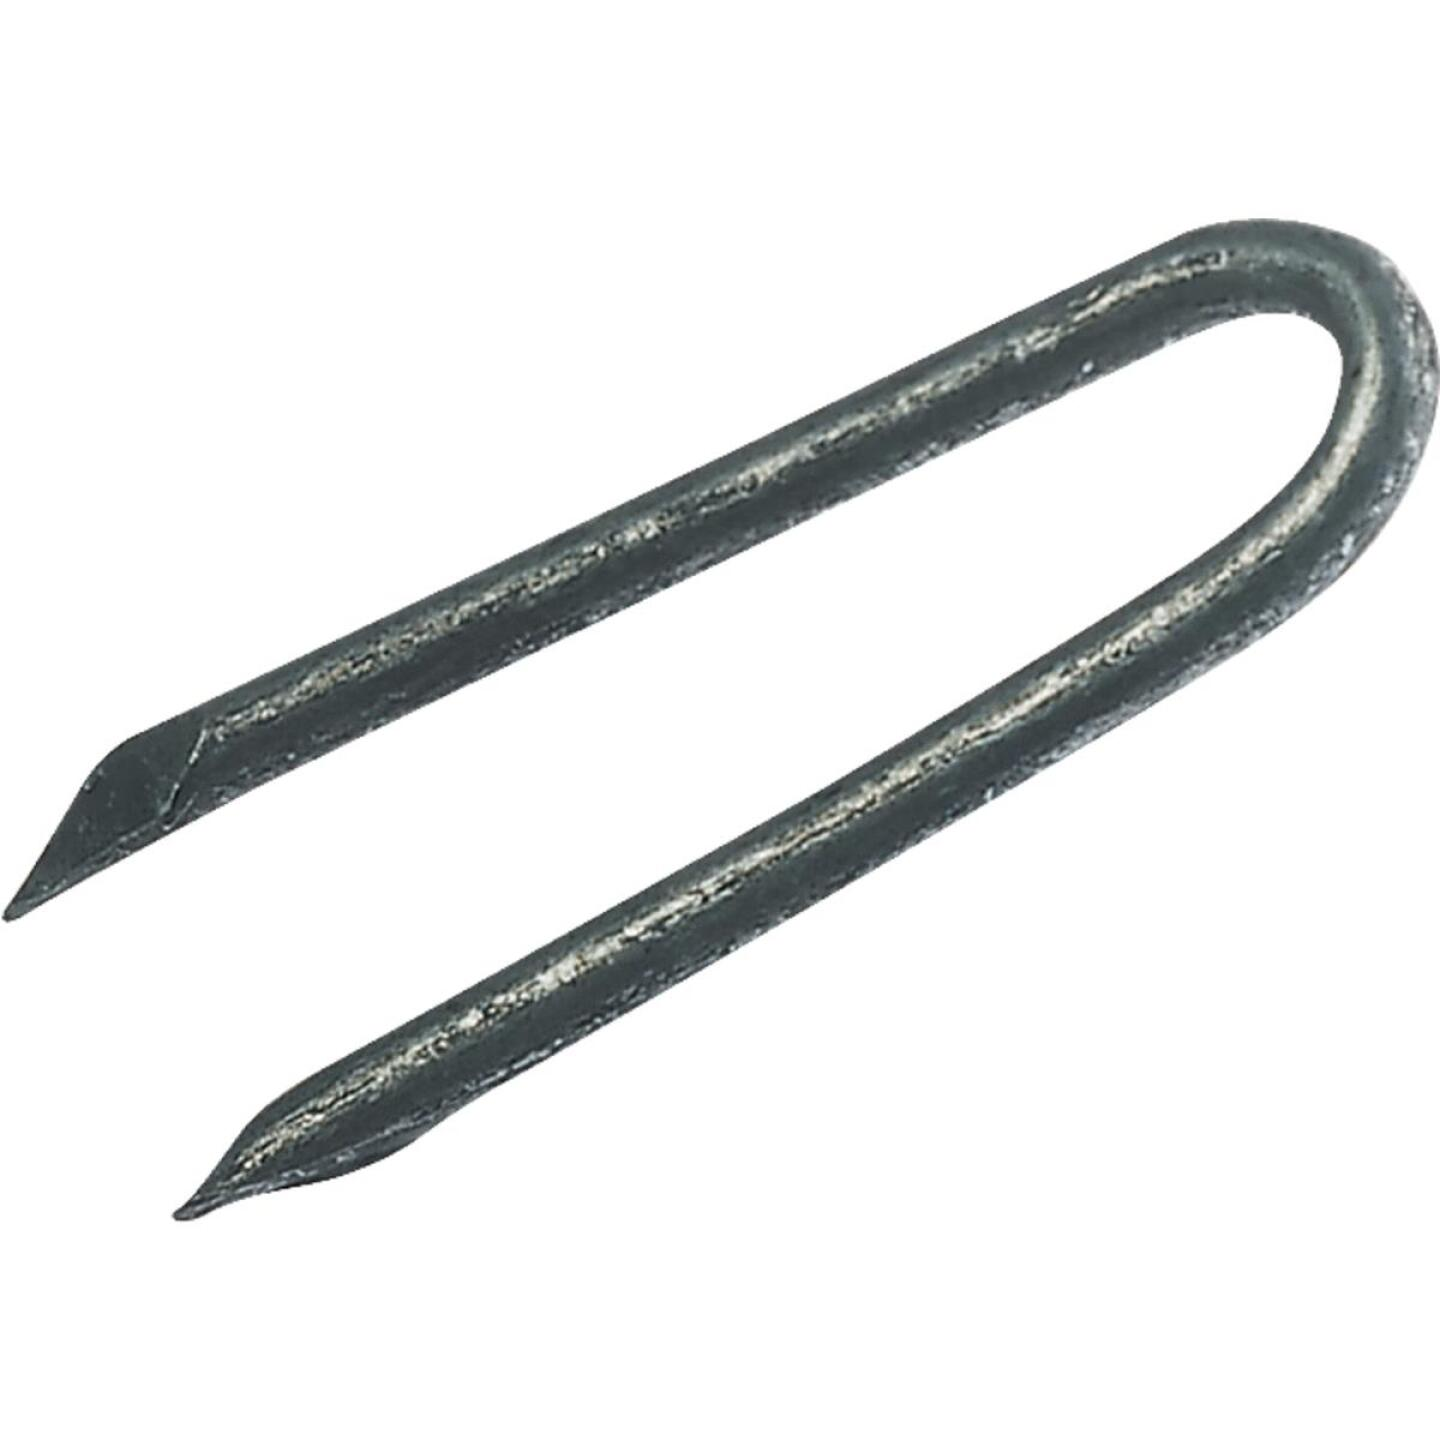 Grip-Rite 1-1/4 In. 9 ga Hot Galvanized Fence Staple (4350 Ct., 50 Lb.) Image 1